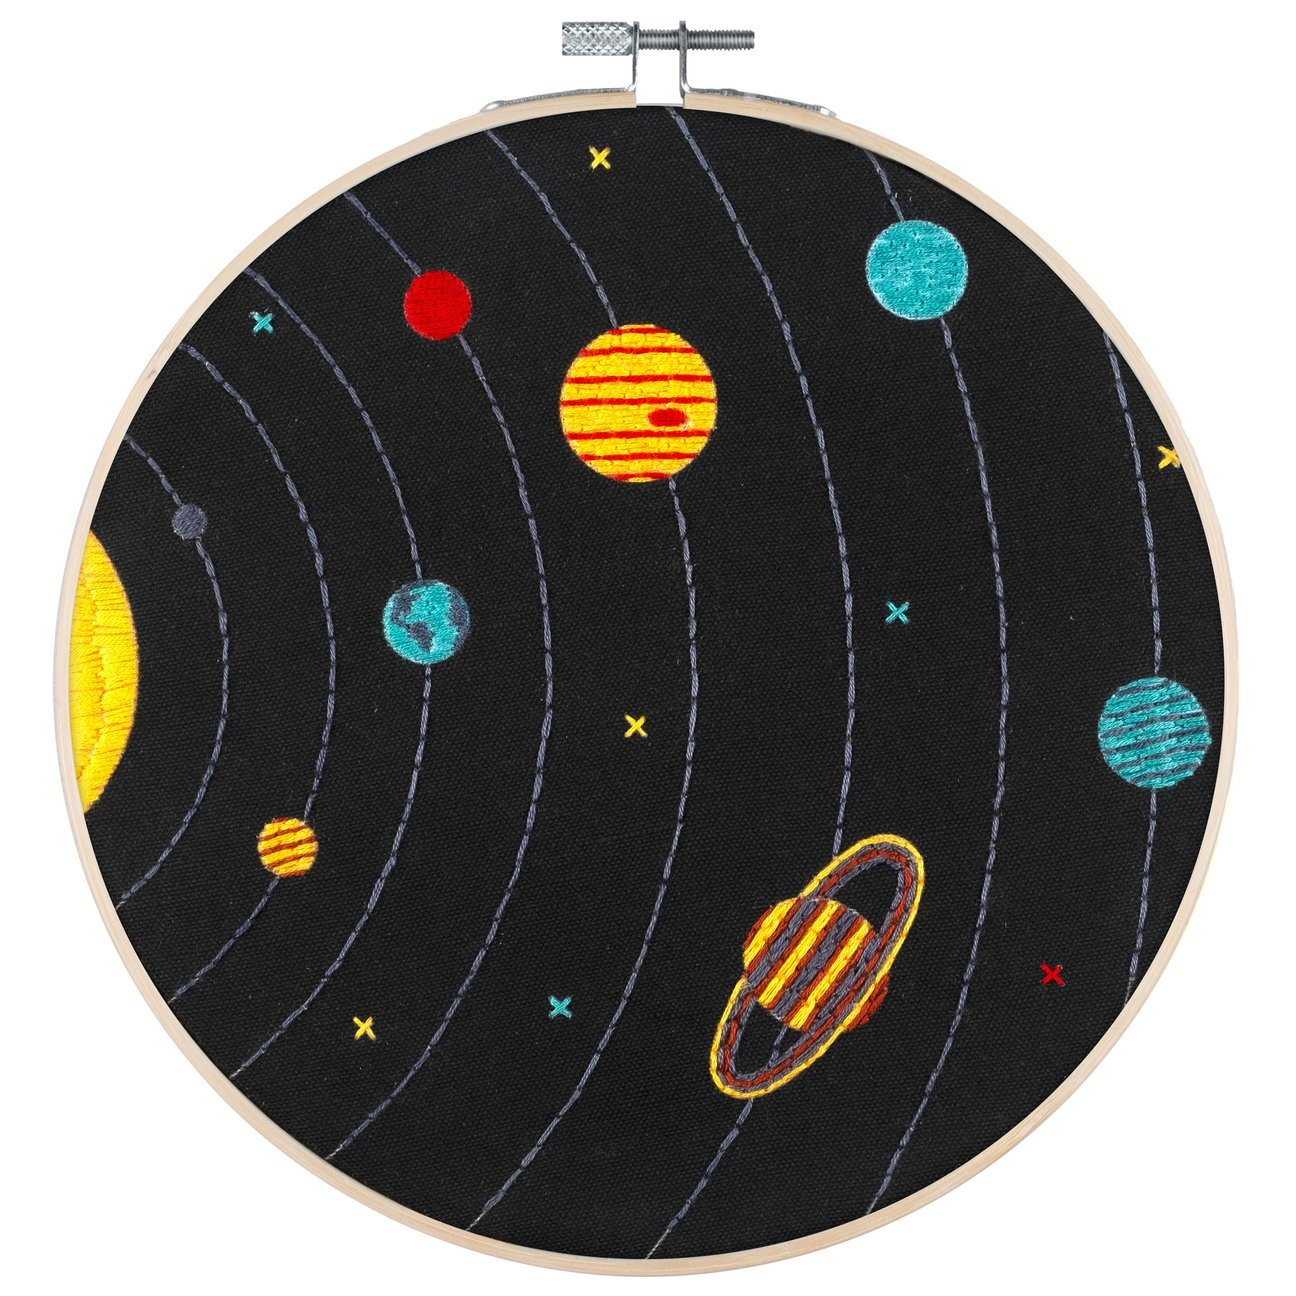 Solar System - PopLush Embroidery Kit 8